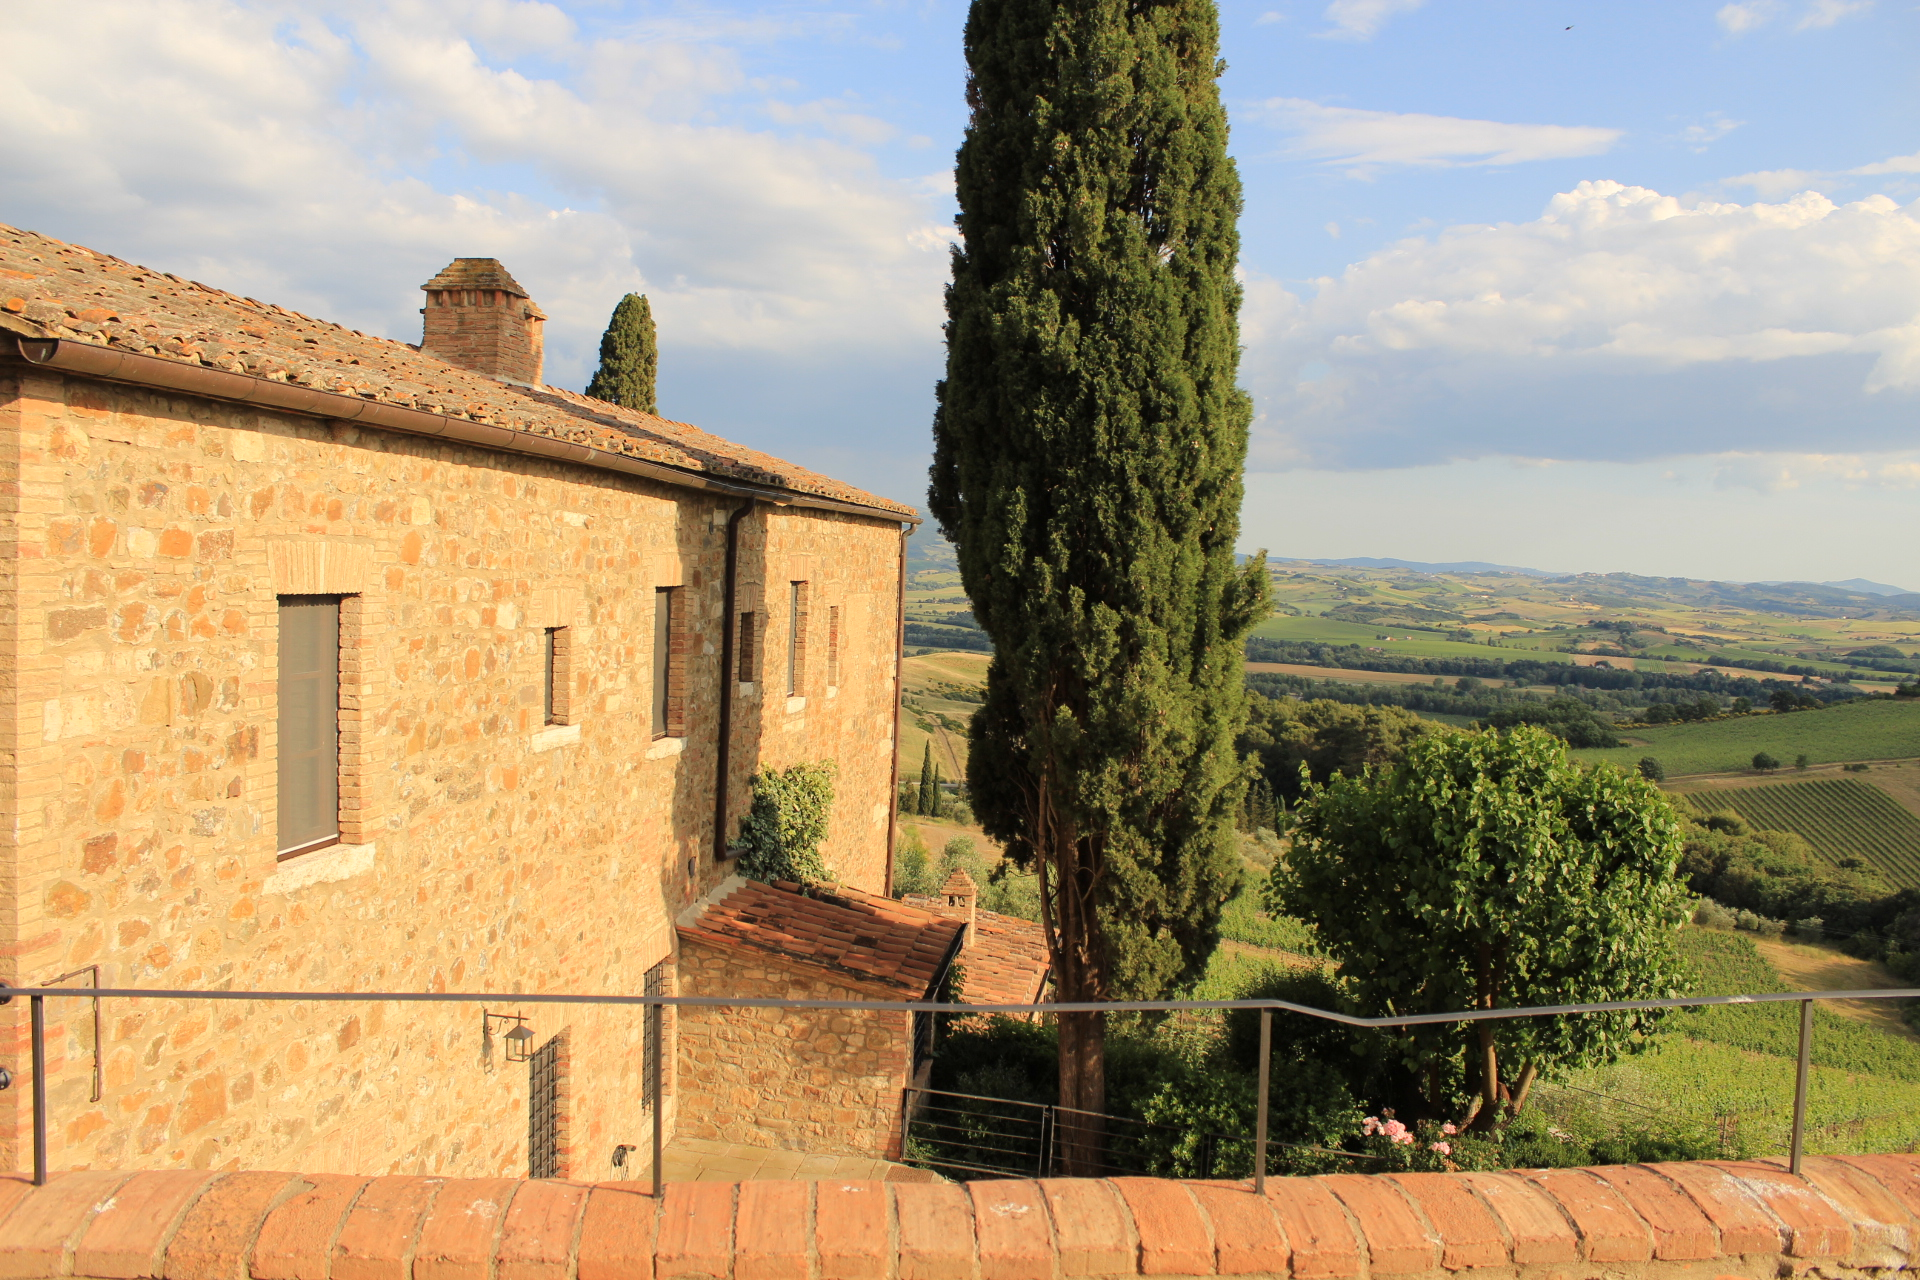 The view from Castello Banfi